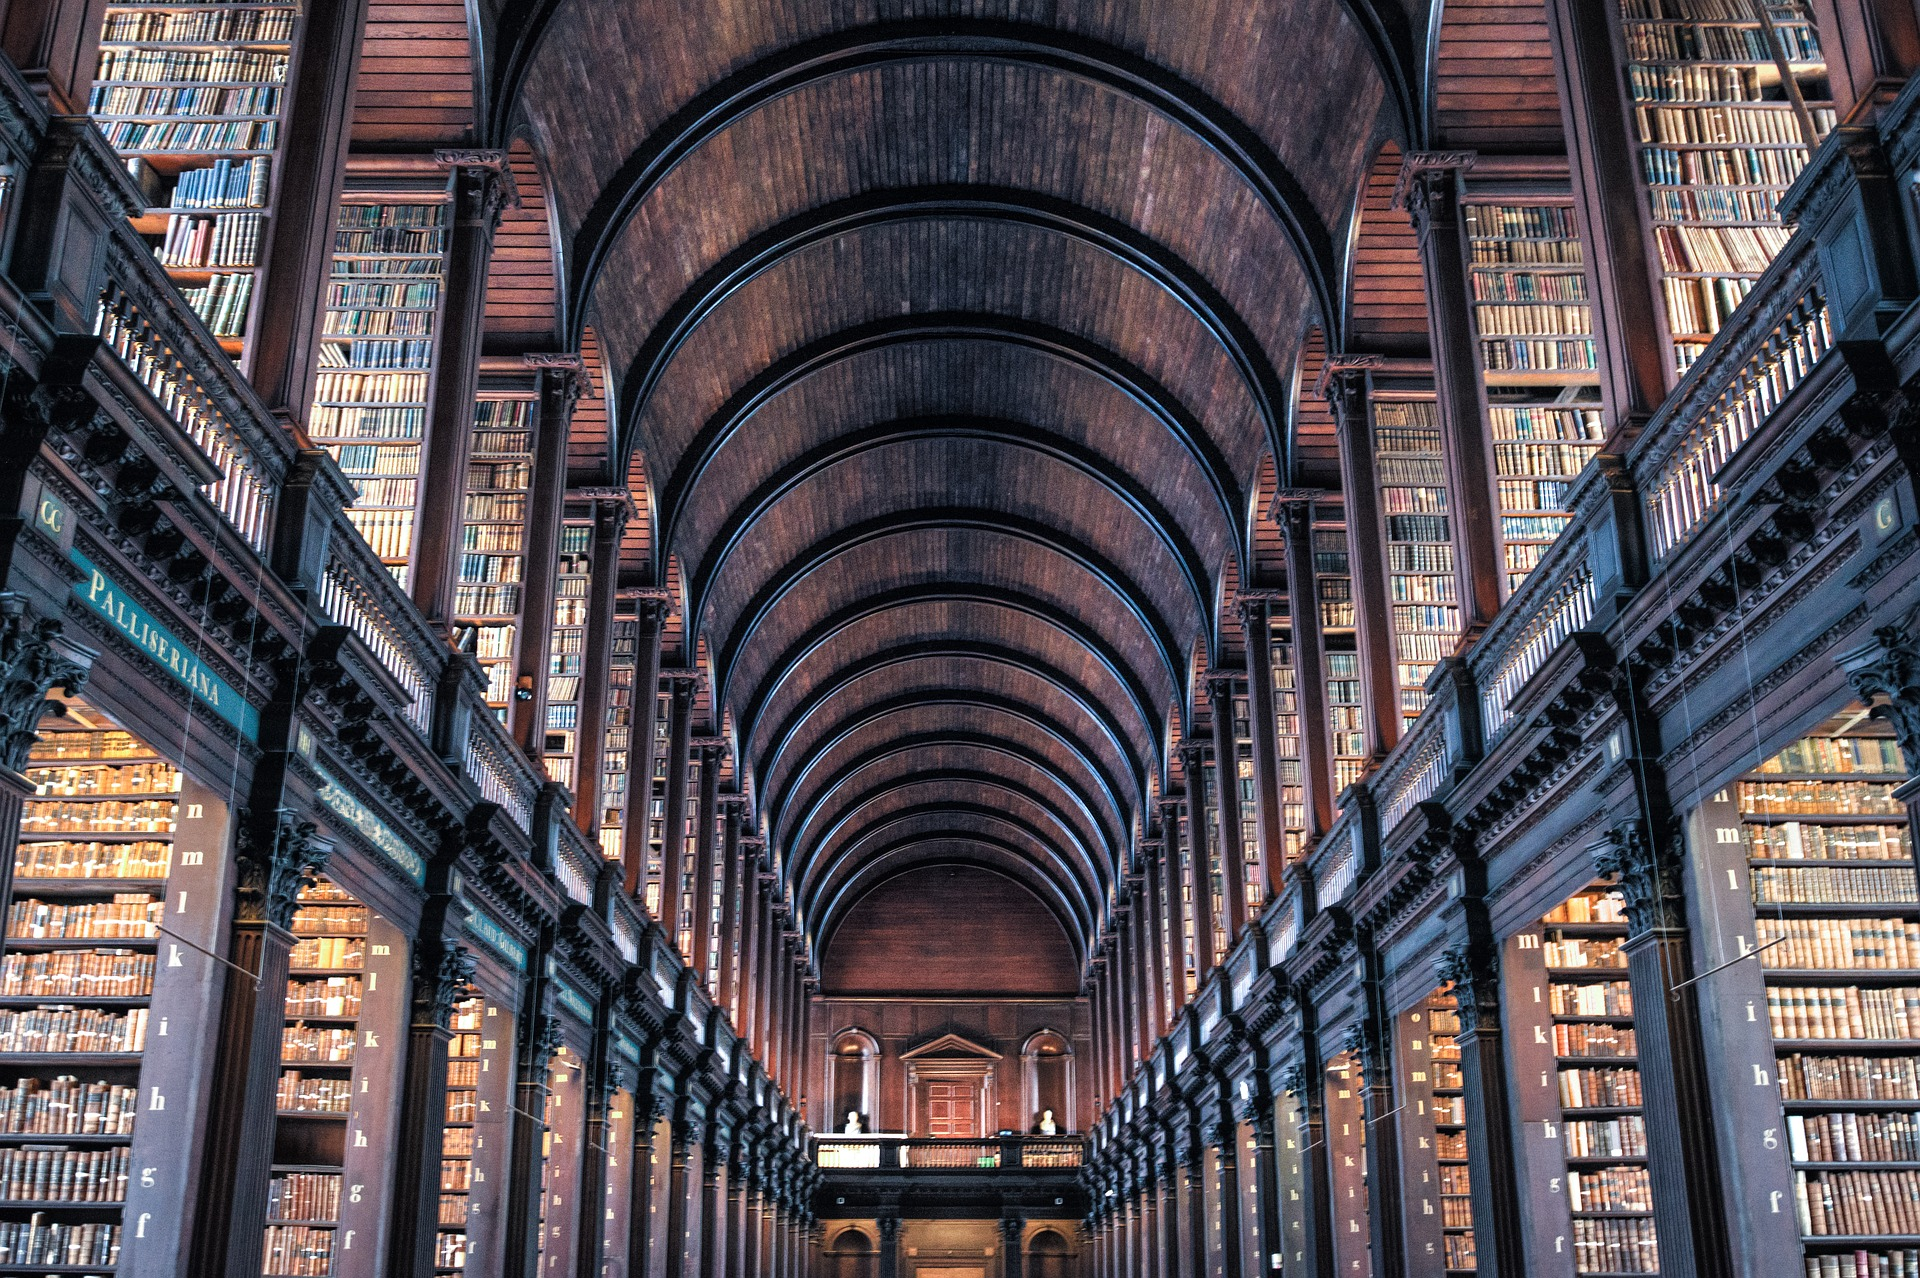 Dublin Collage Library